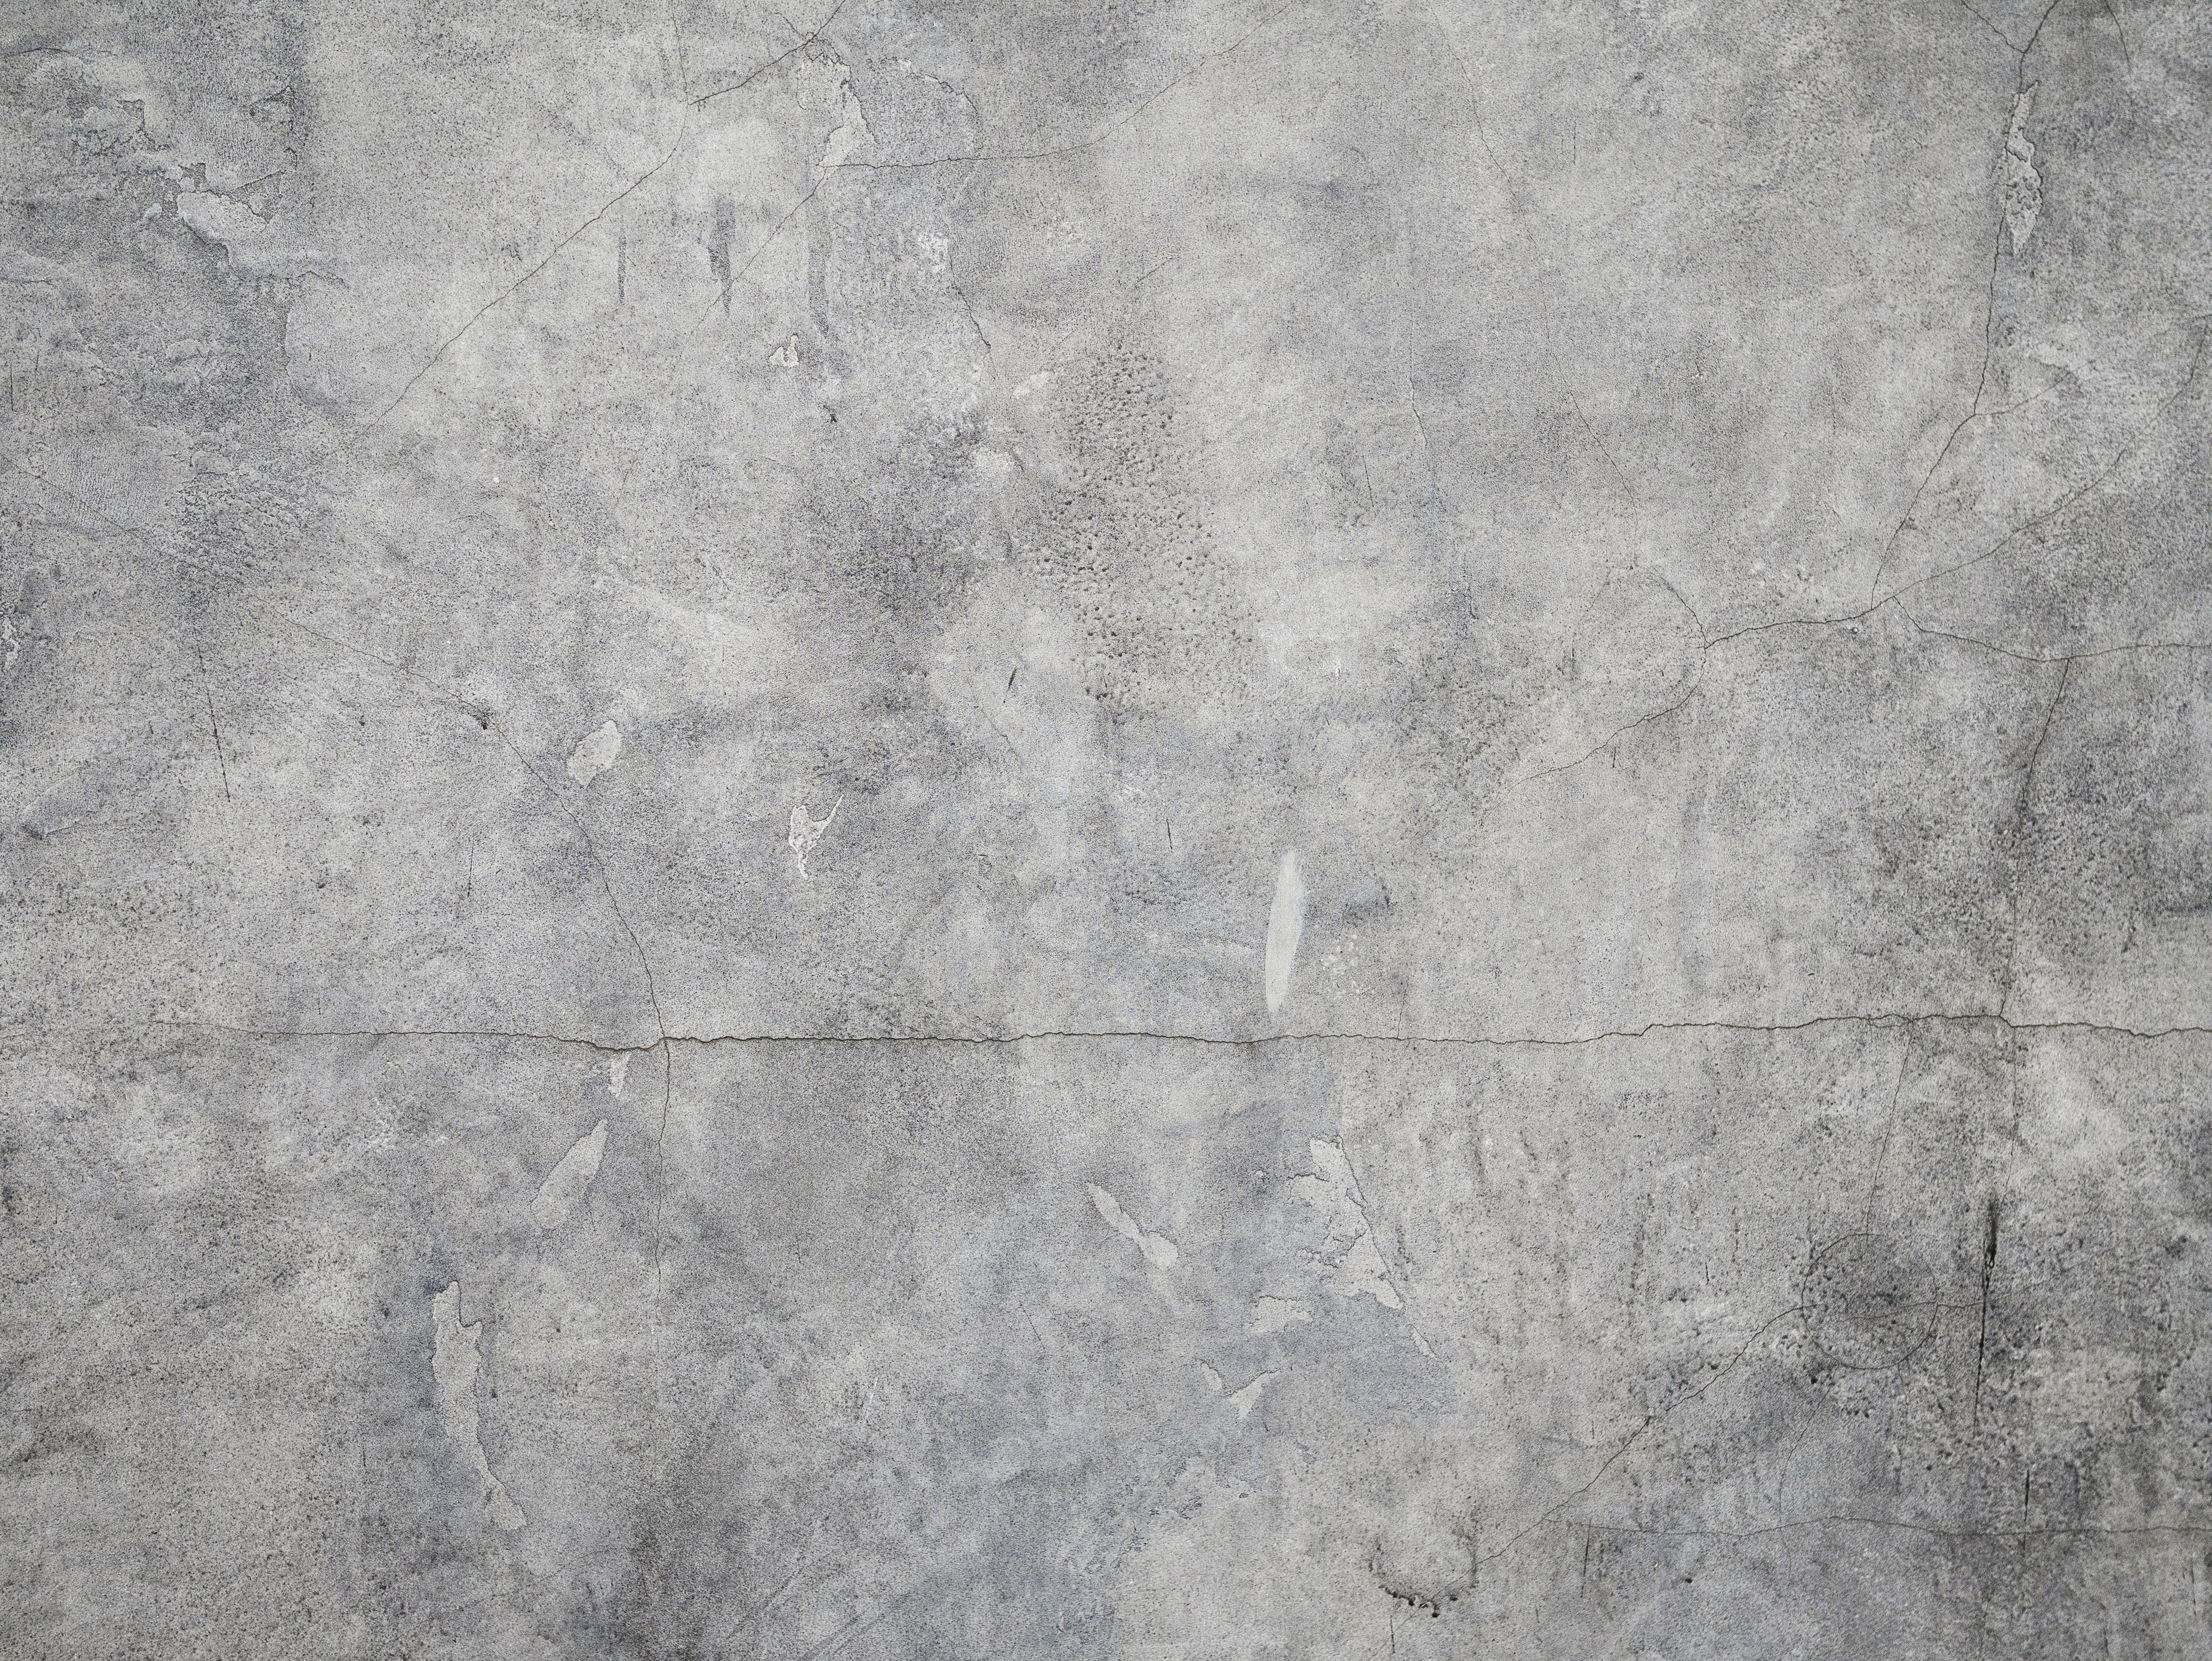 A Grey Texture On Concrete As A Background Design Concrete Wall Texture Concrete Wall Concrete